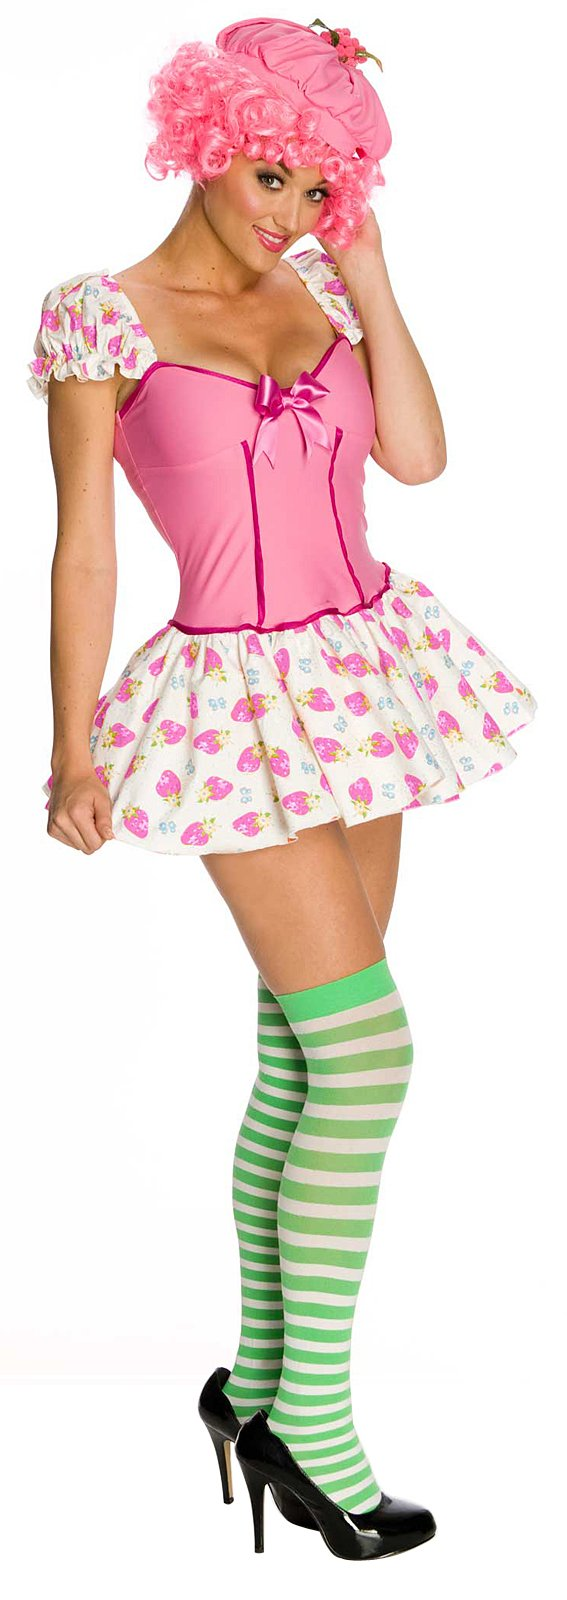 Strawberry Shortcake - Rasberry Tart Adult Costume